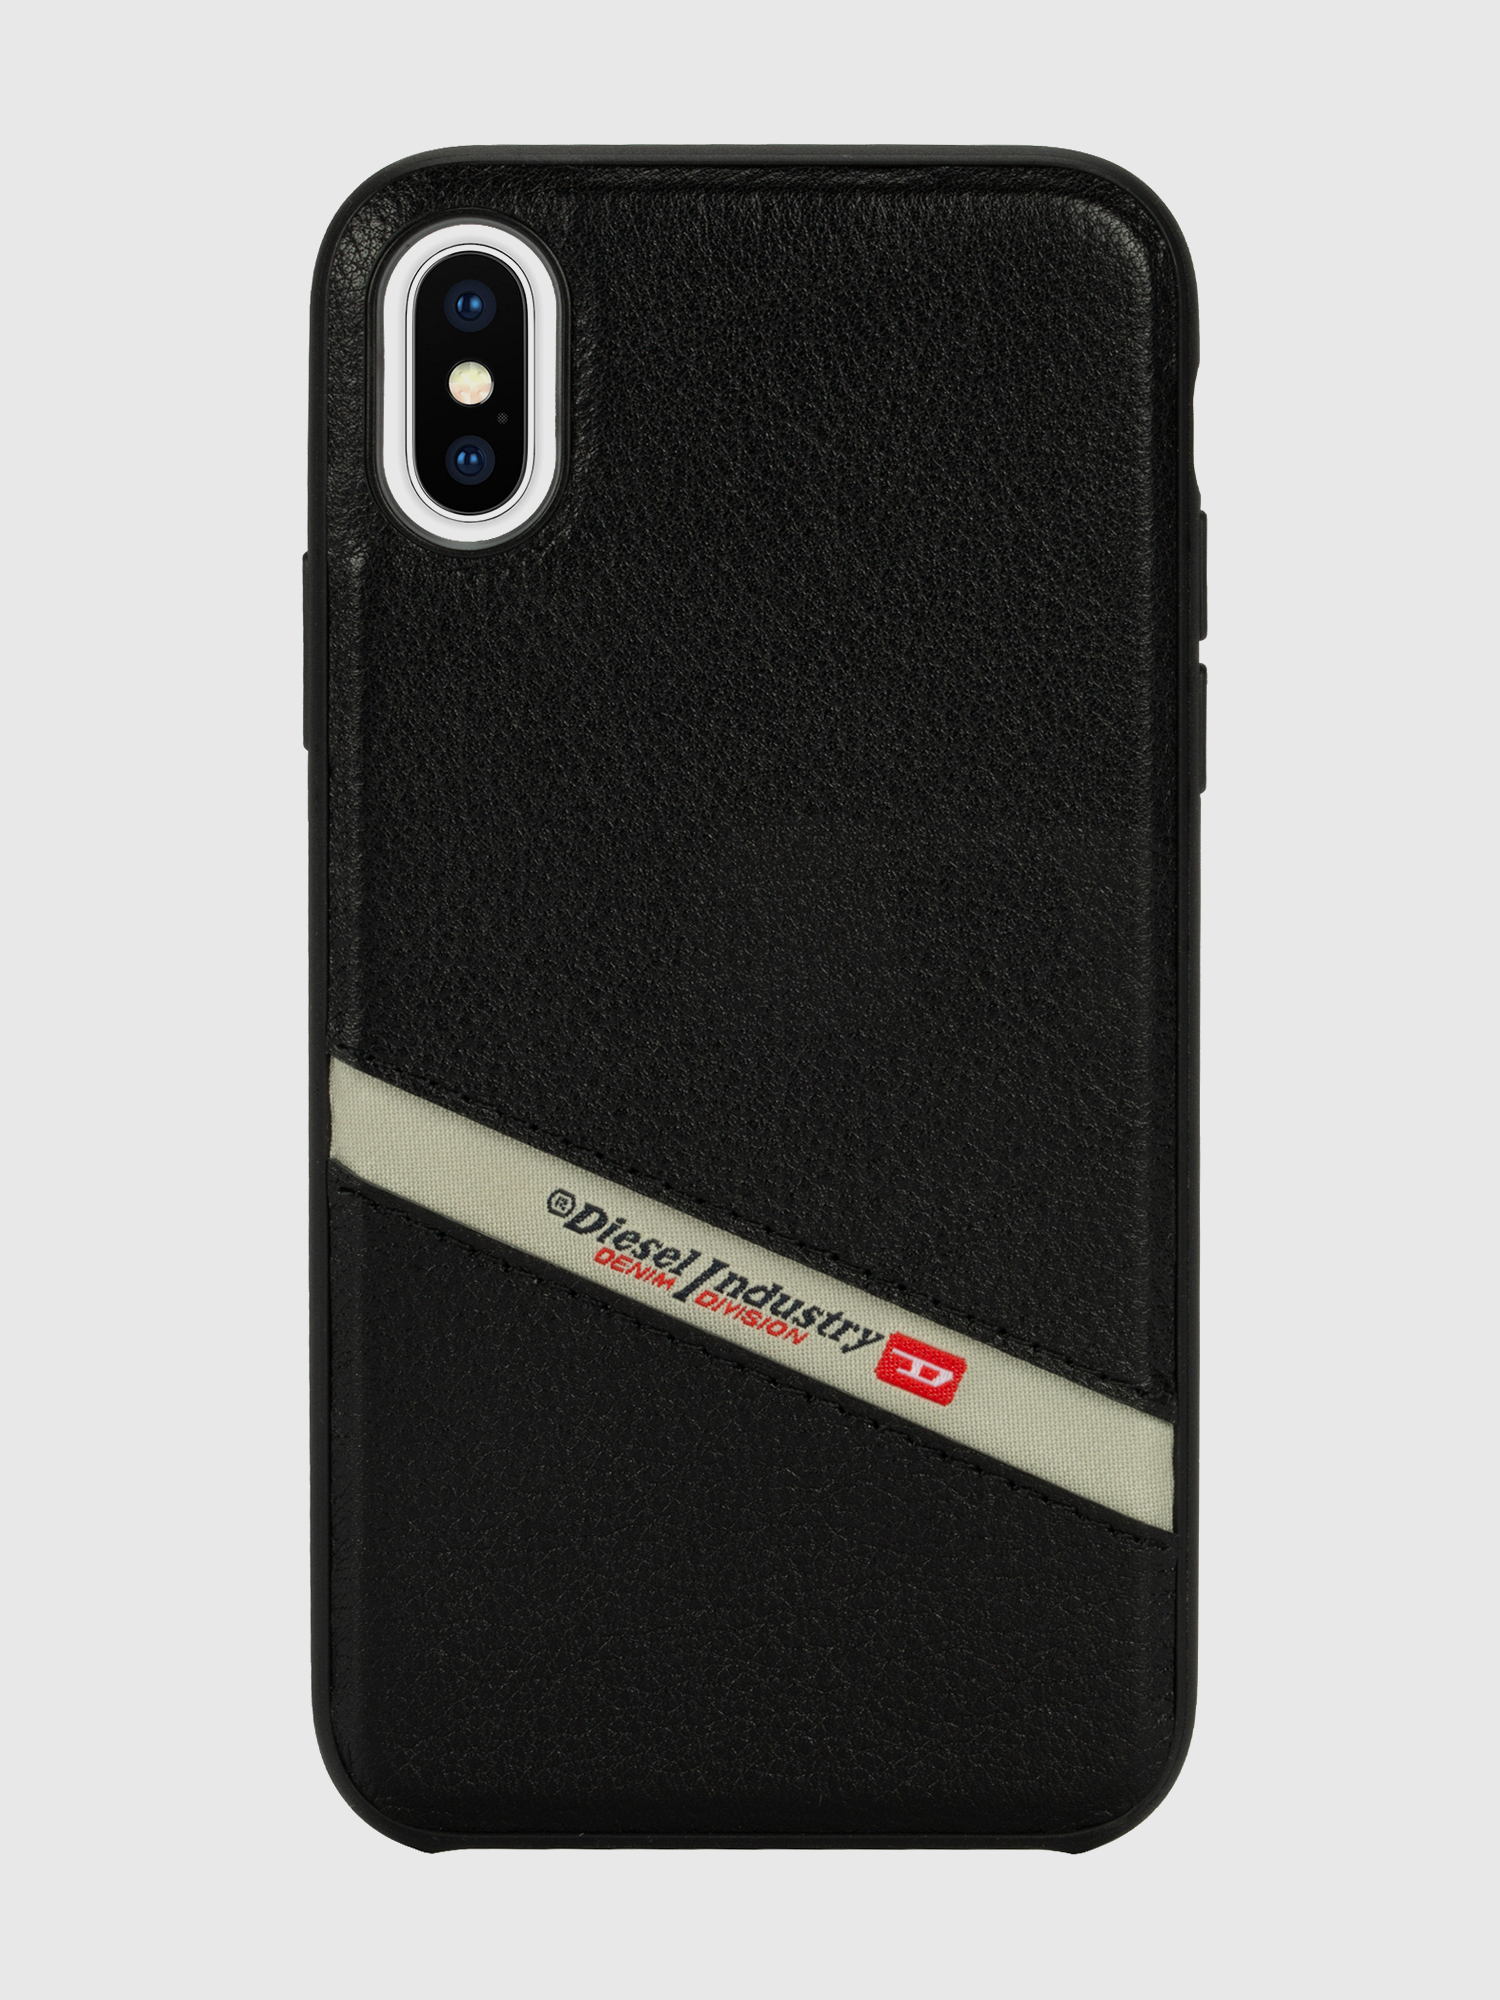 Diesel - DIESEL LEATHER CO-MOLD CASE FOR IPHONE XS & IPHONE X,  - Schutzhüllen - Image 2